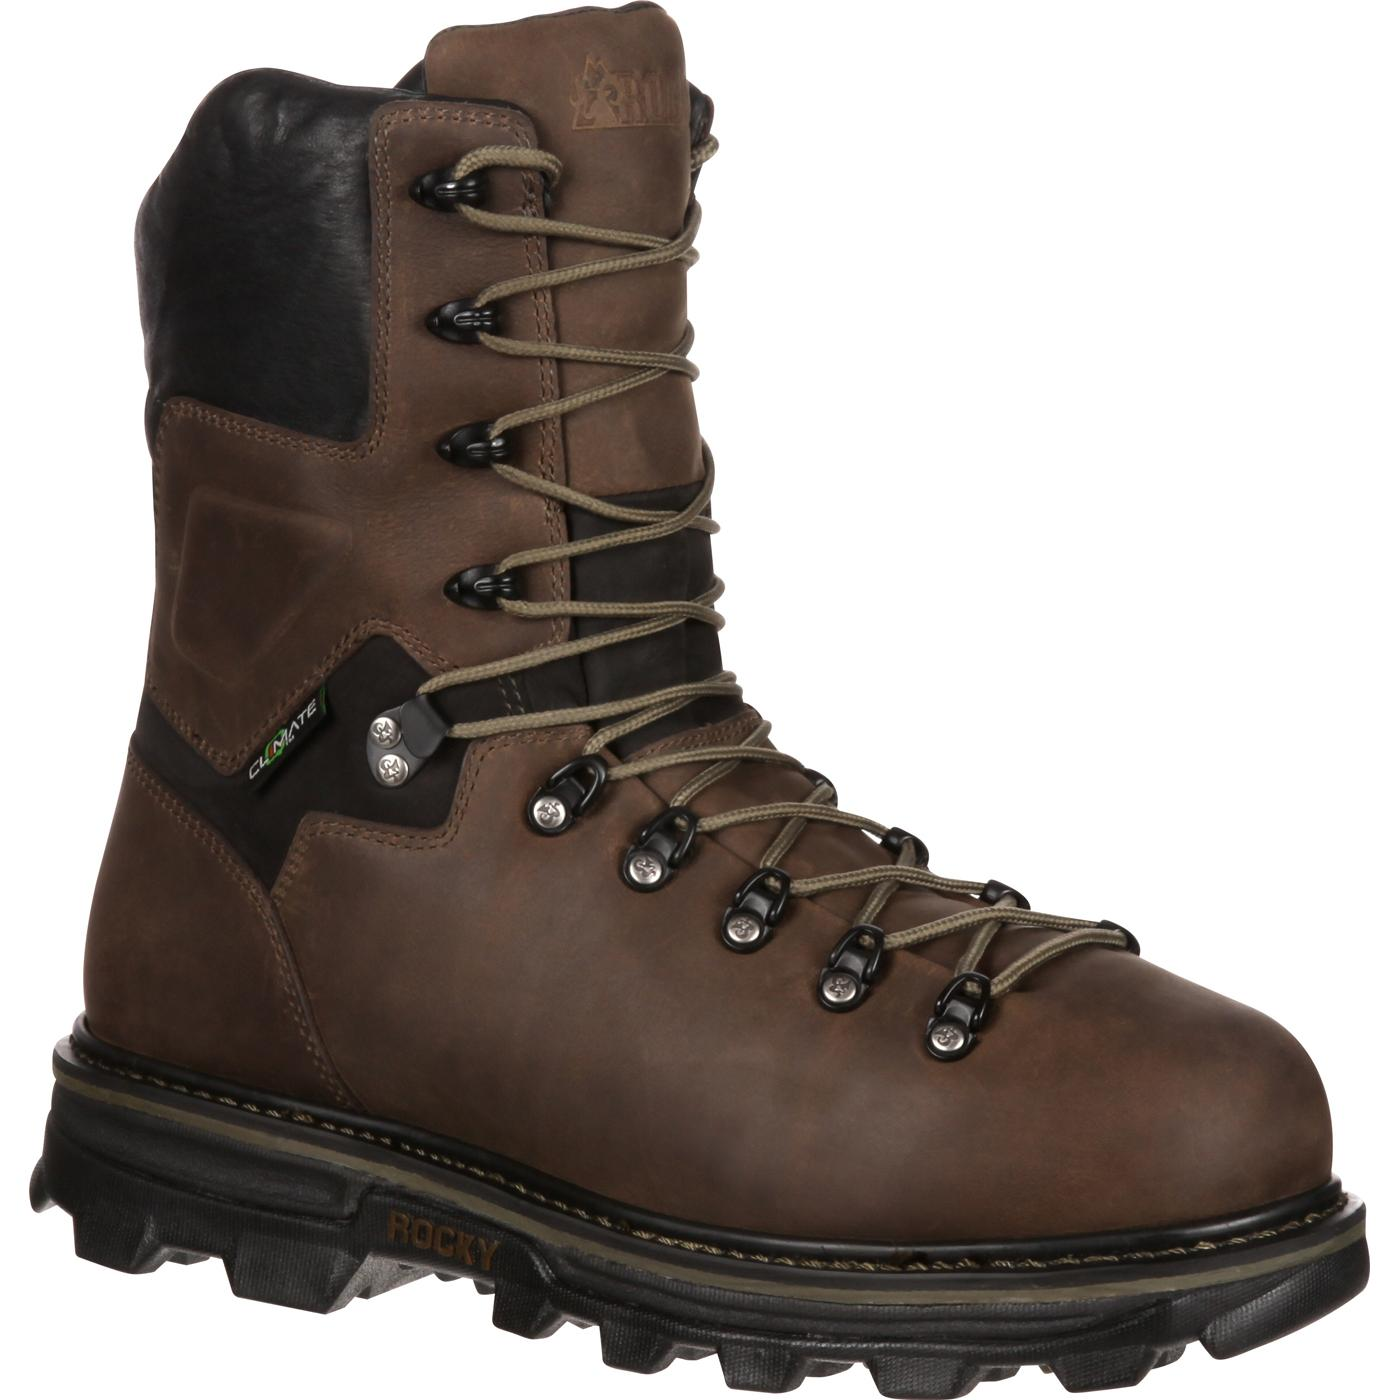 Men's Insulated Outdoor Boots - Insulated Boots